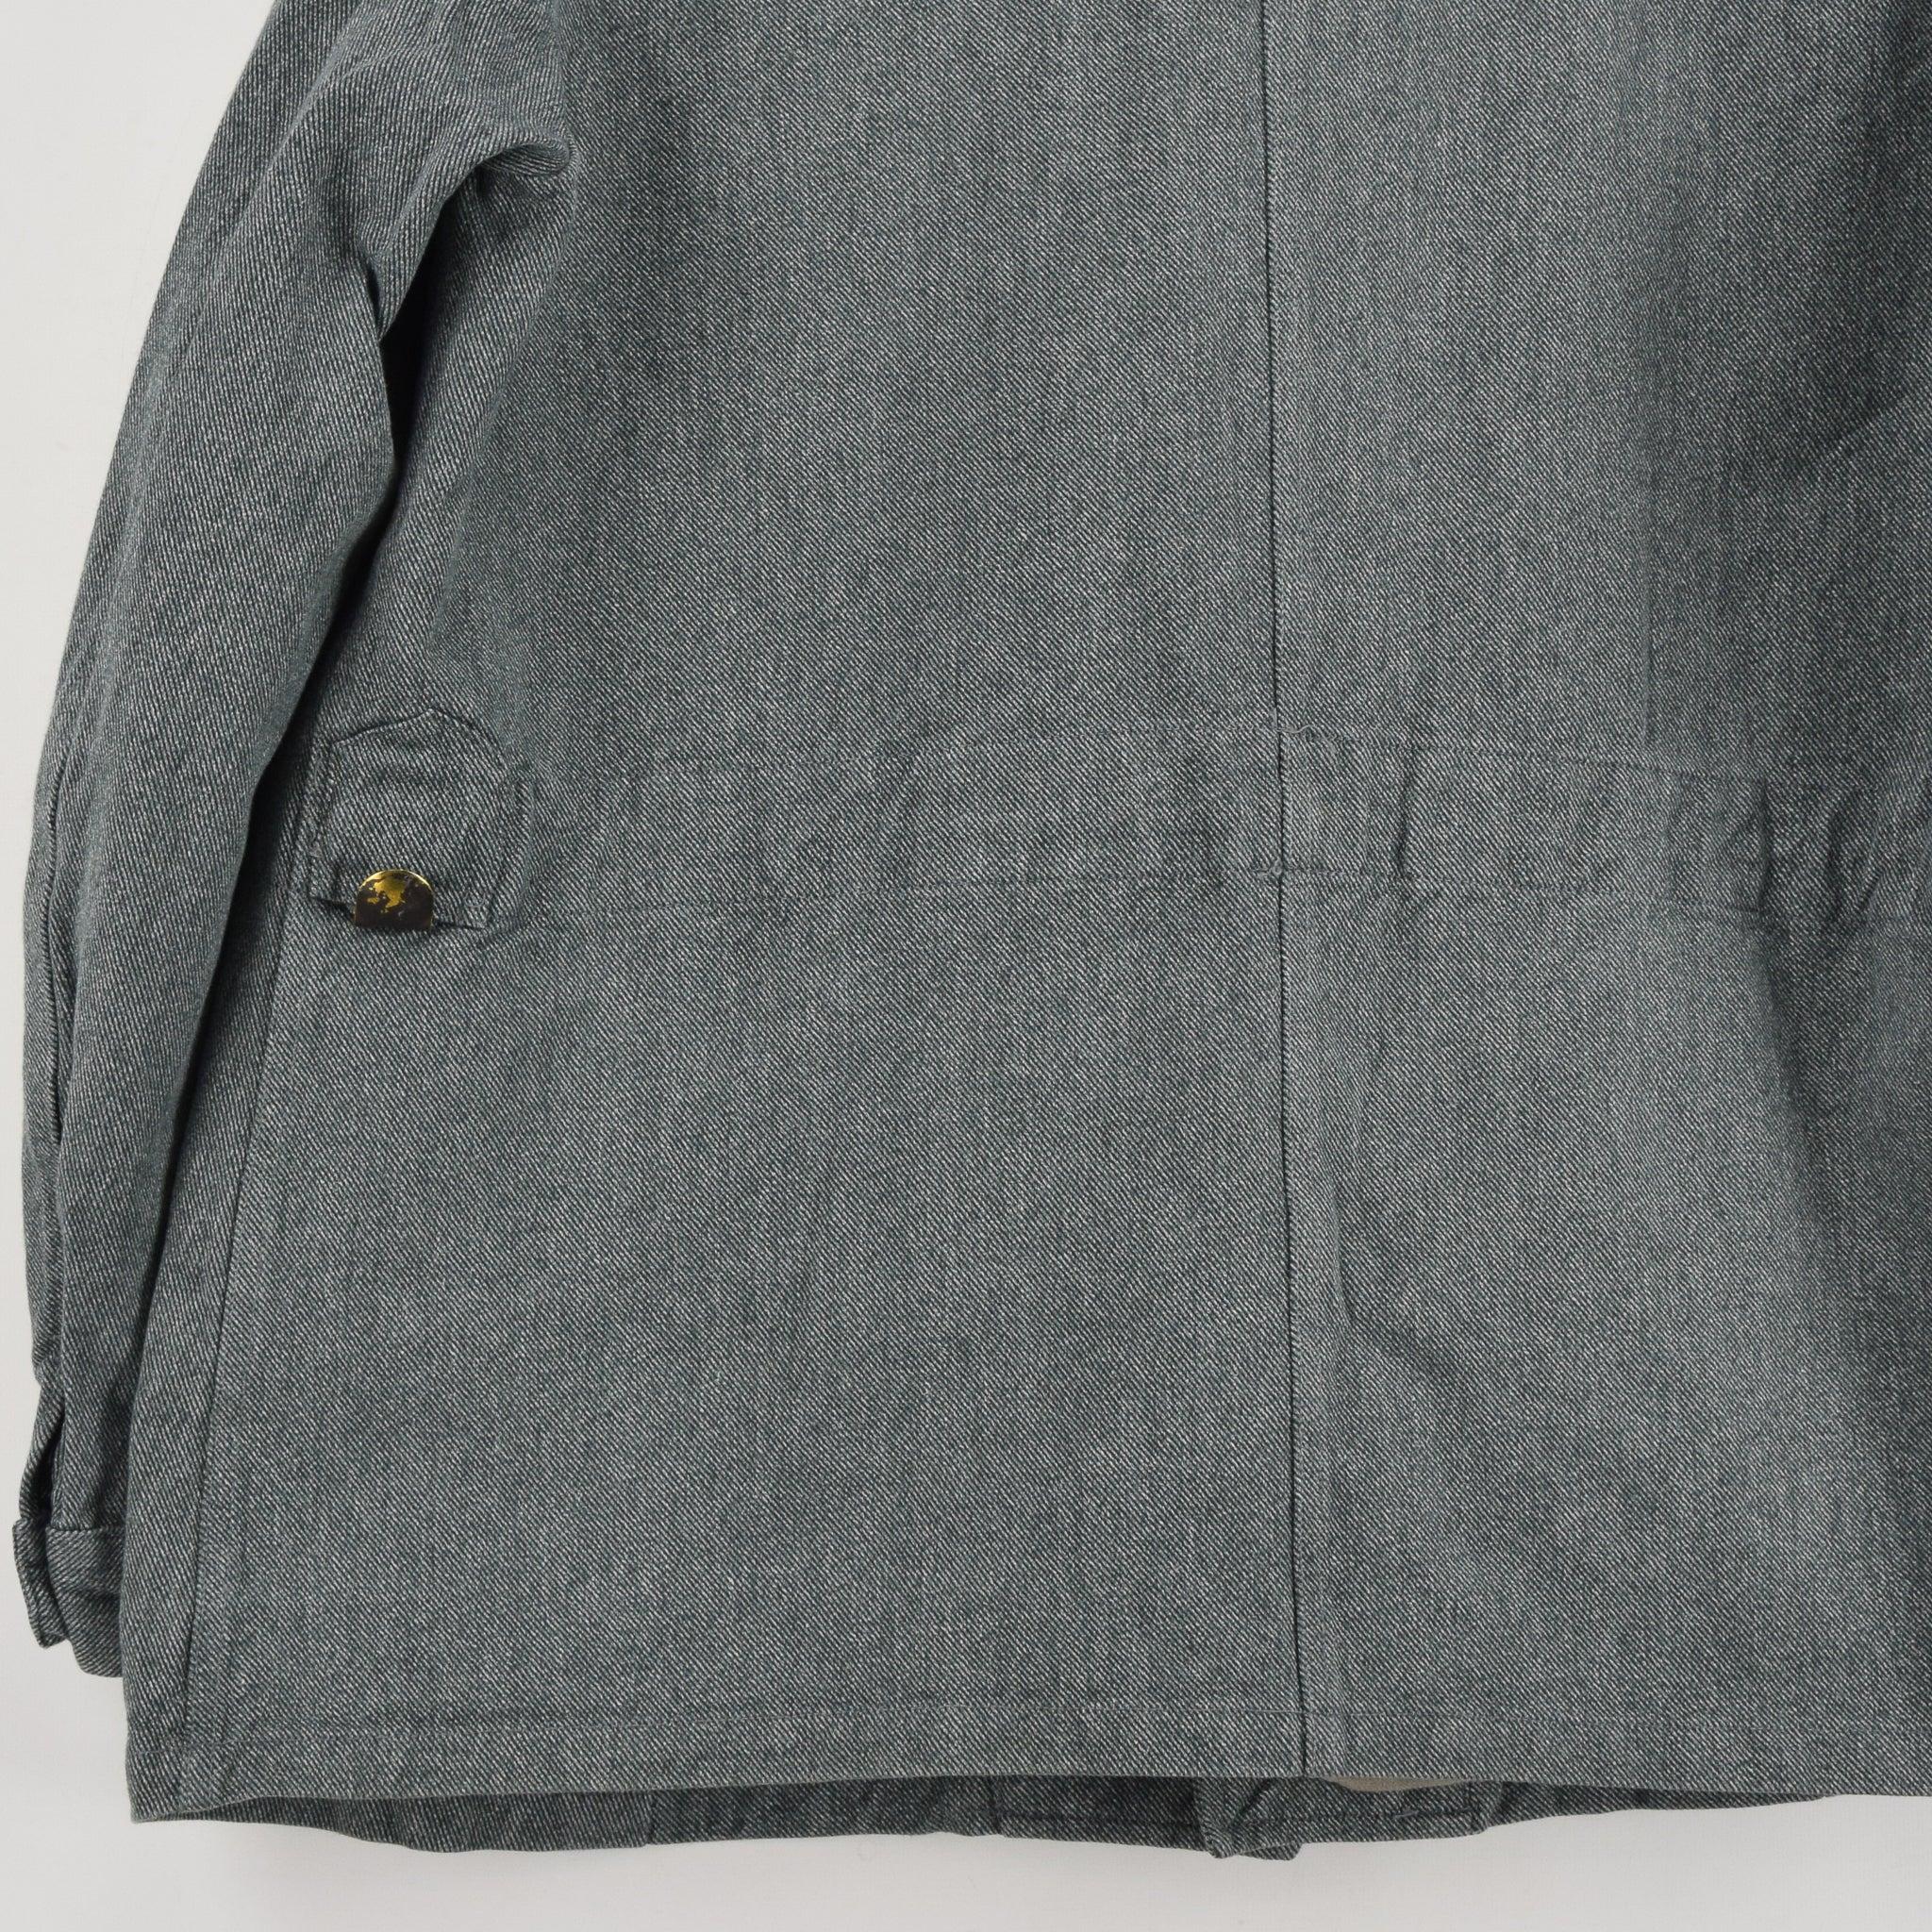 Vintage 40s WWII Era Swiss Army Salt & Pepper Worker Chore Jacket L back hem